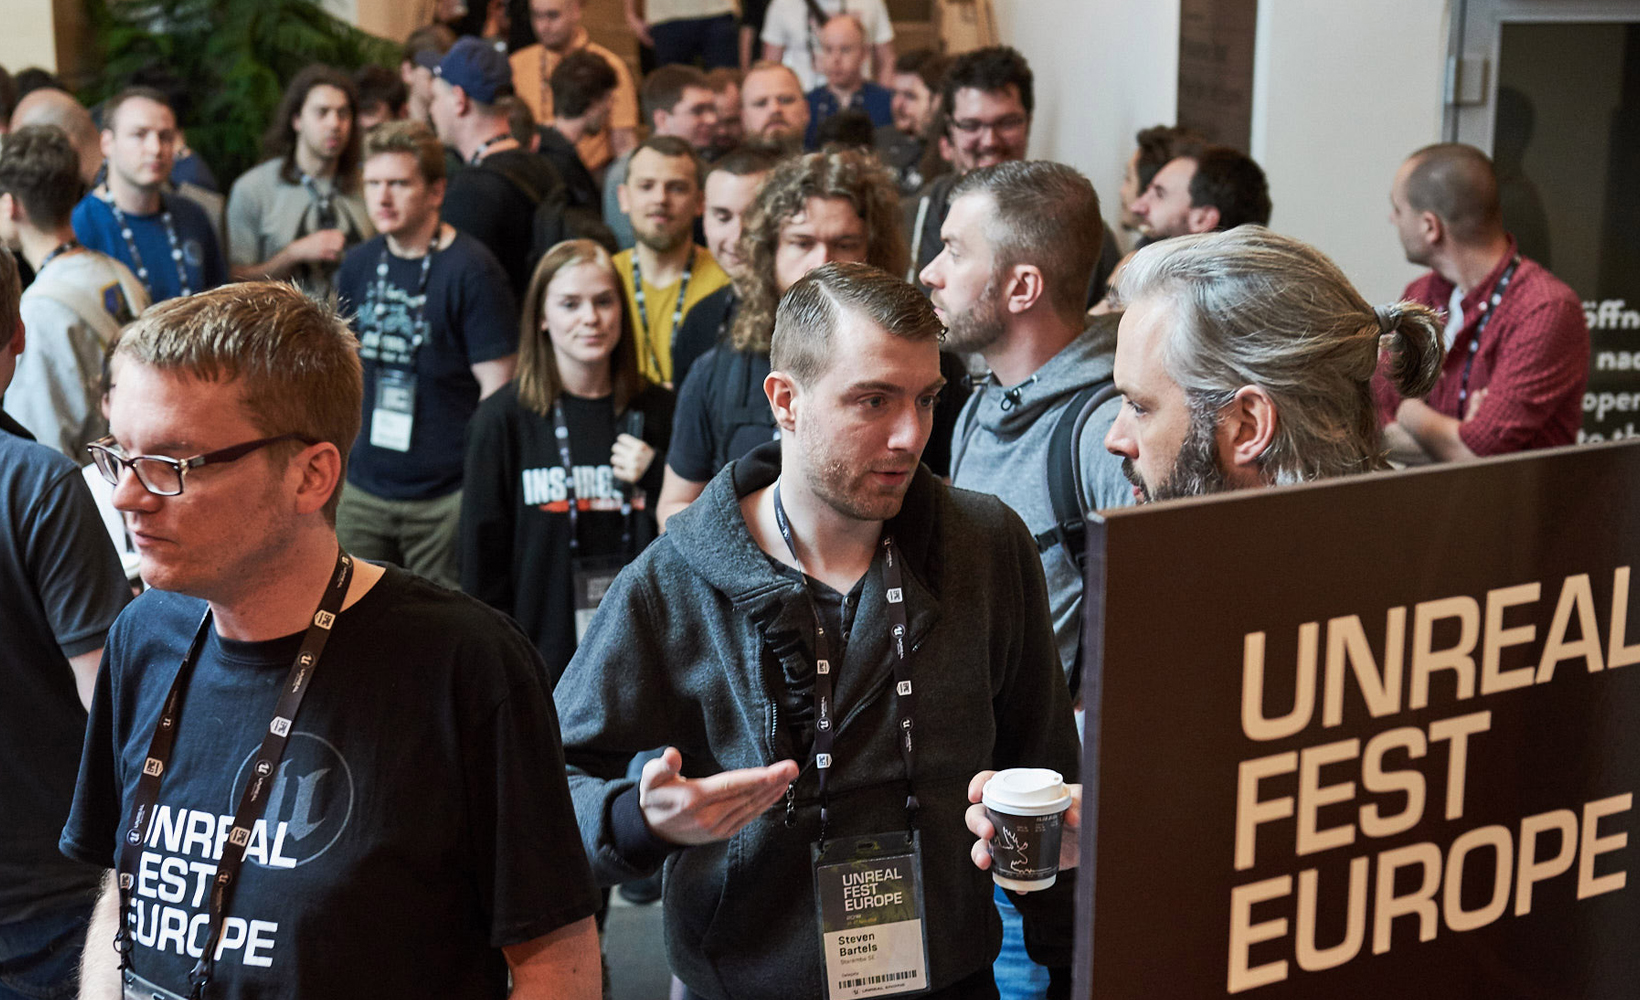 Unreal Fest Europe 2019 in Prague, April 10-11